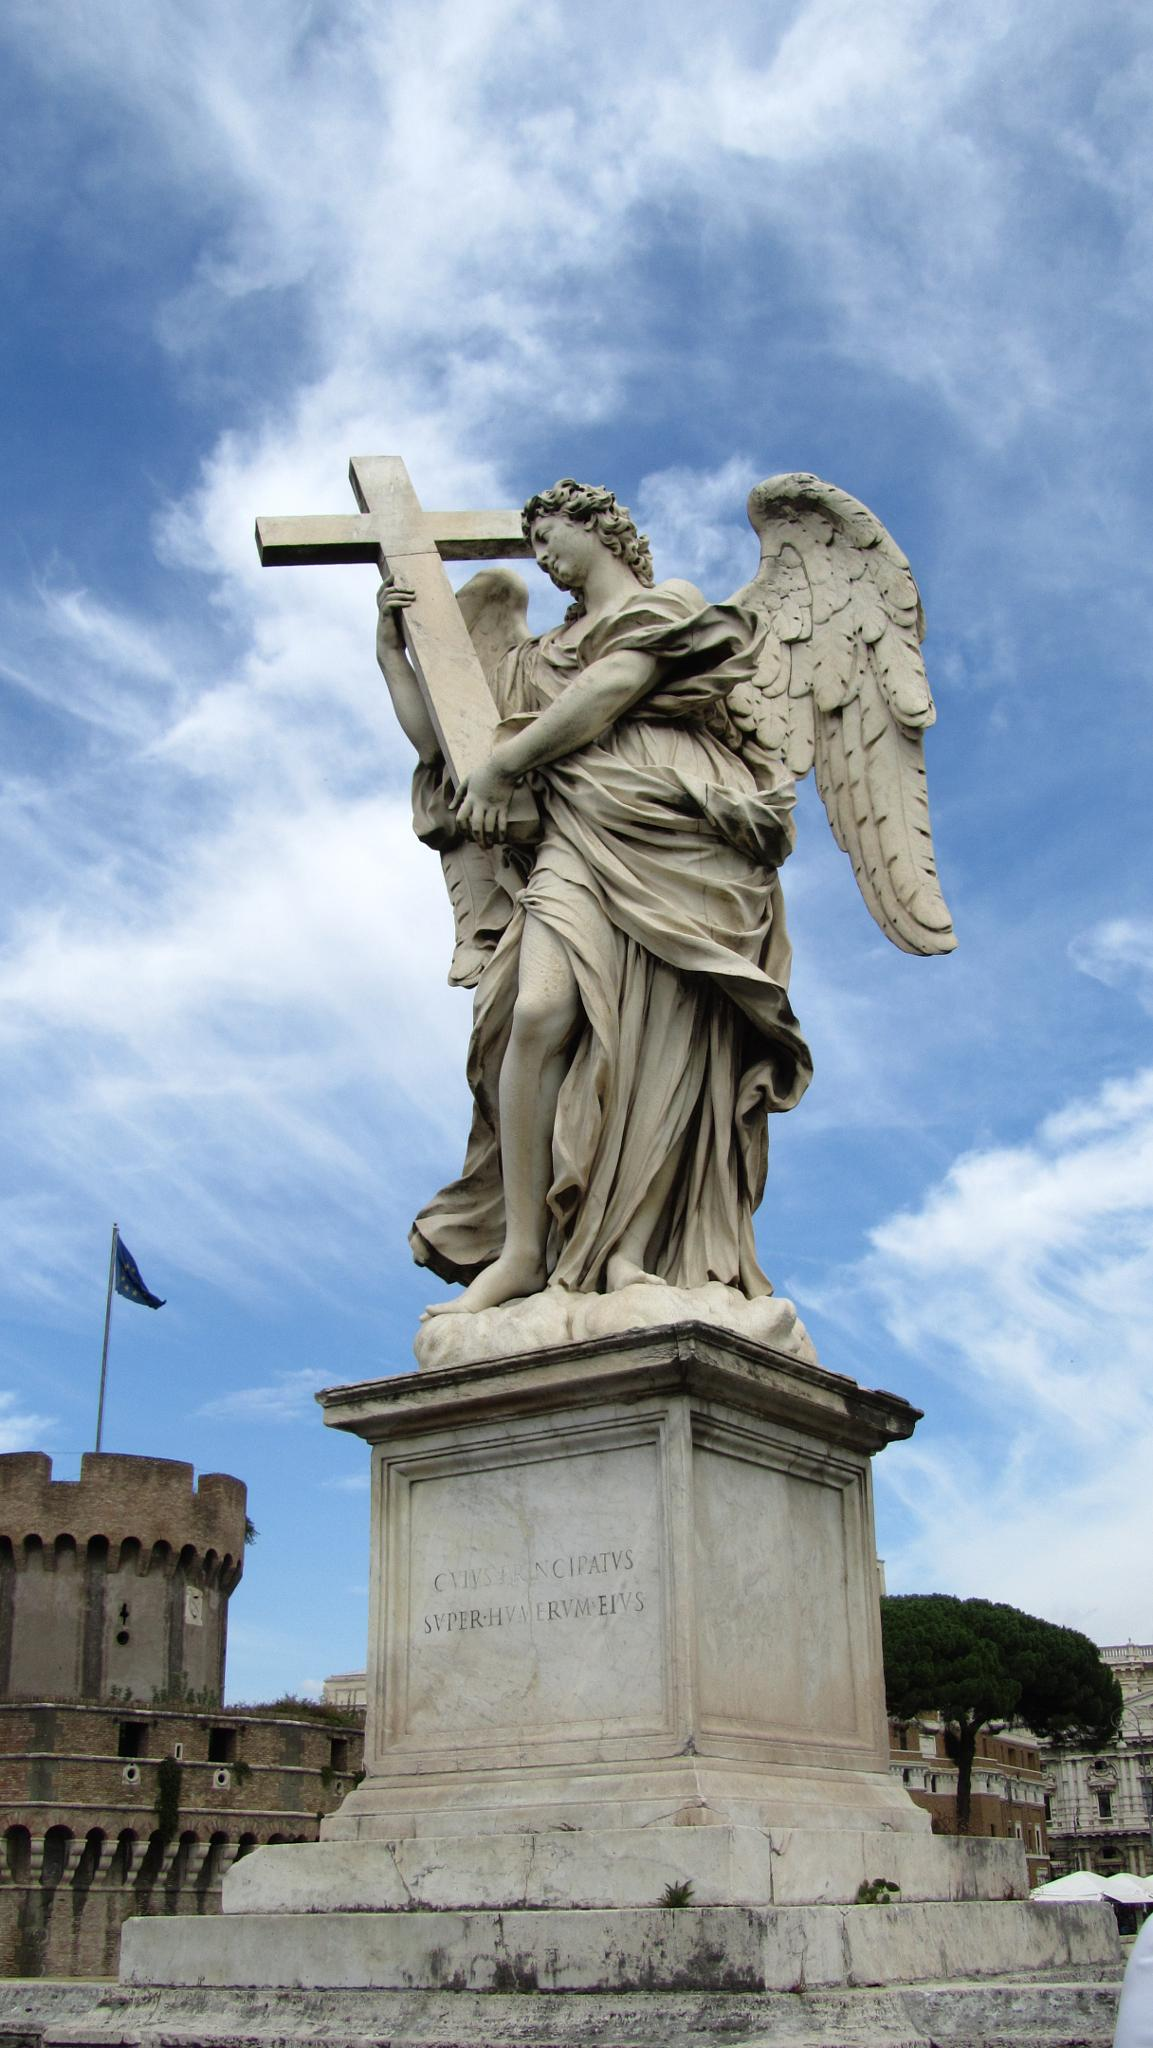 Angel with Cross by ingamay.premros